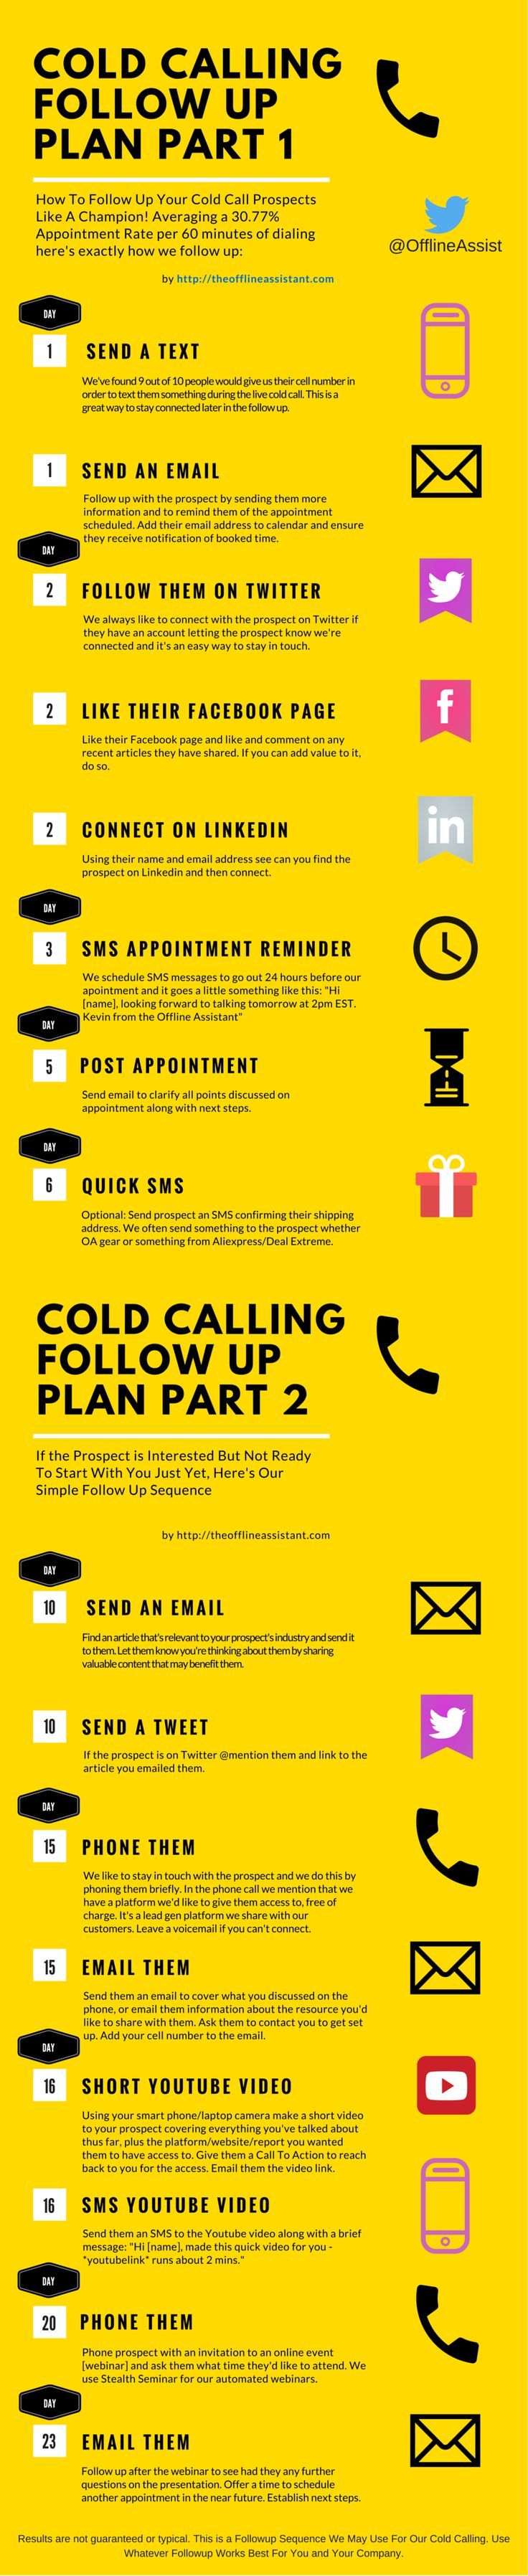 Cold Calling - How To Follow Up #Infographic #coldcalling #salestips…